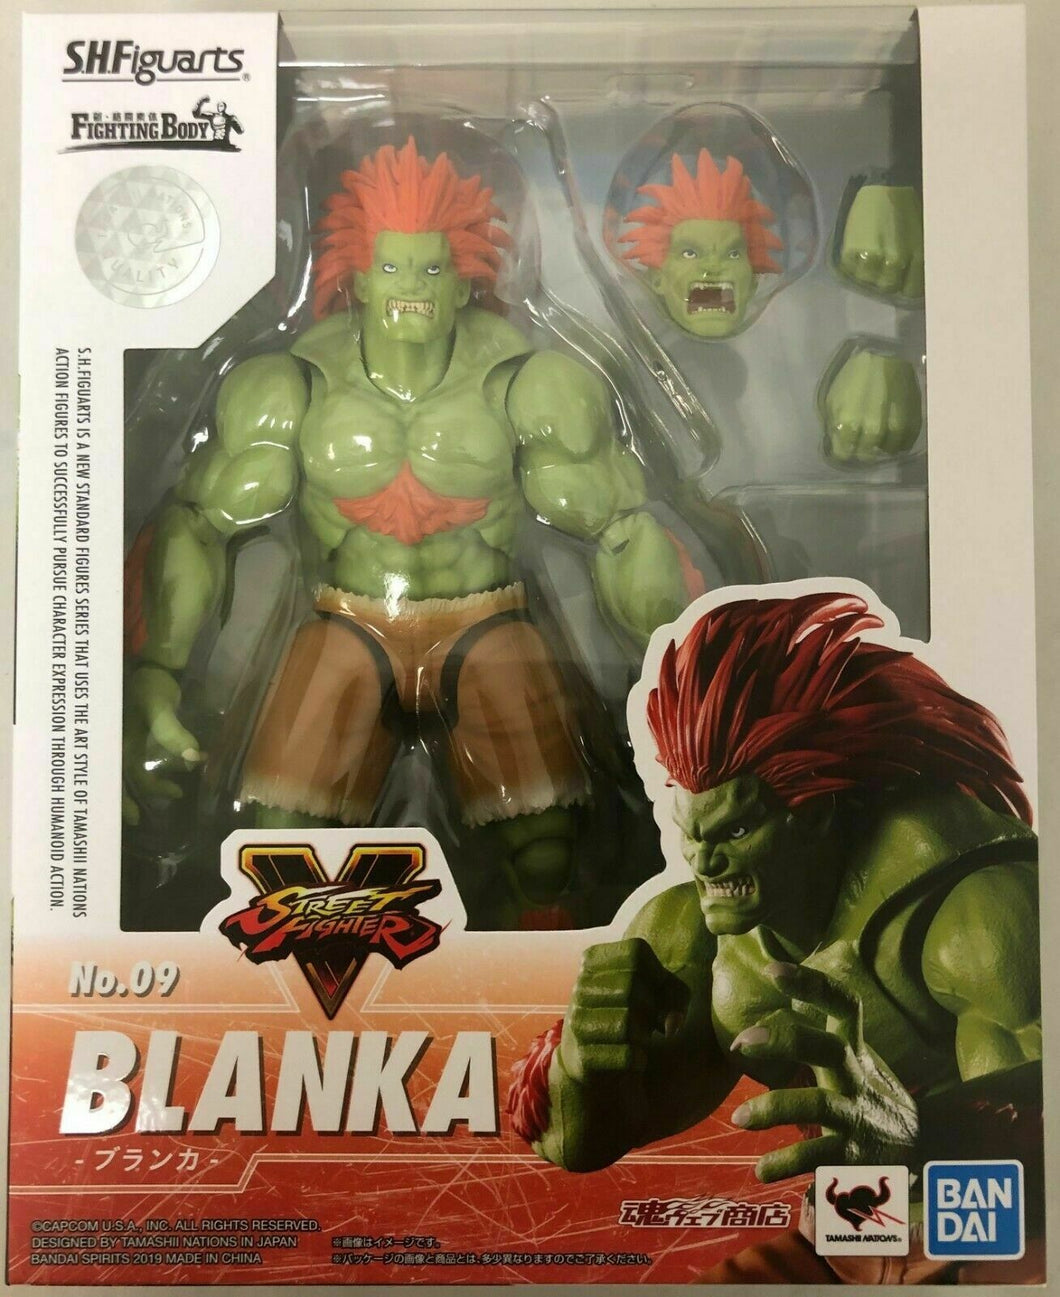 S.H. Figuarts Blanka Action Figure Street Fighter No. 09 Bandai Tamashi Nations